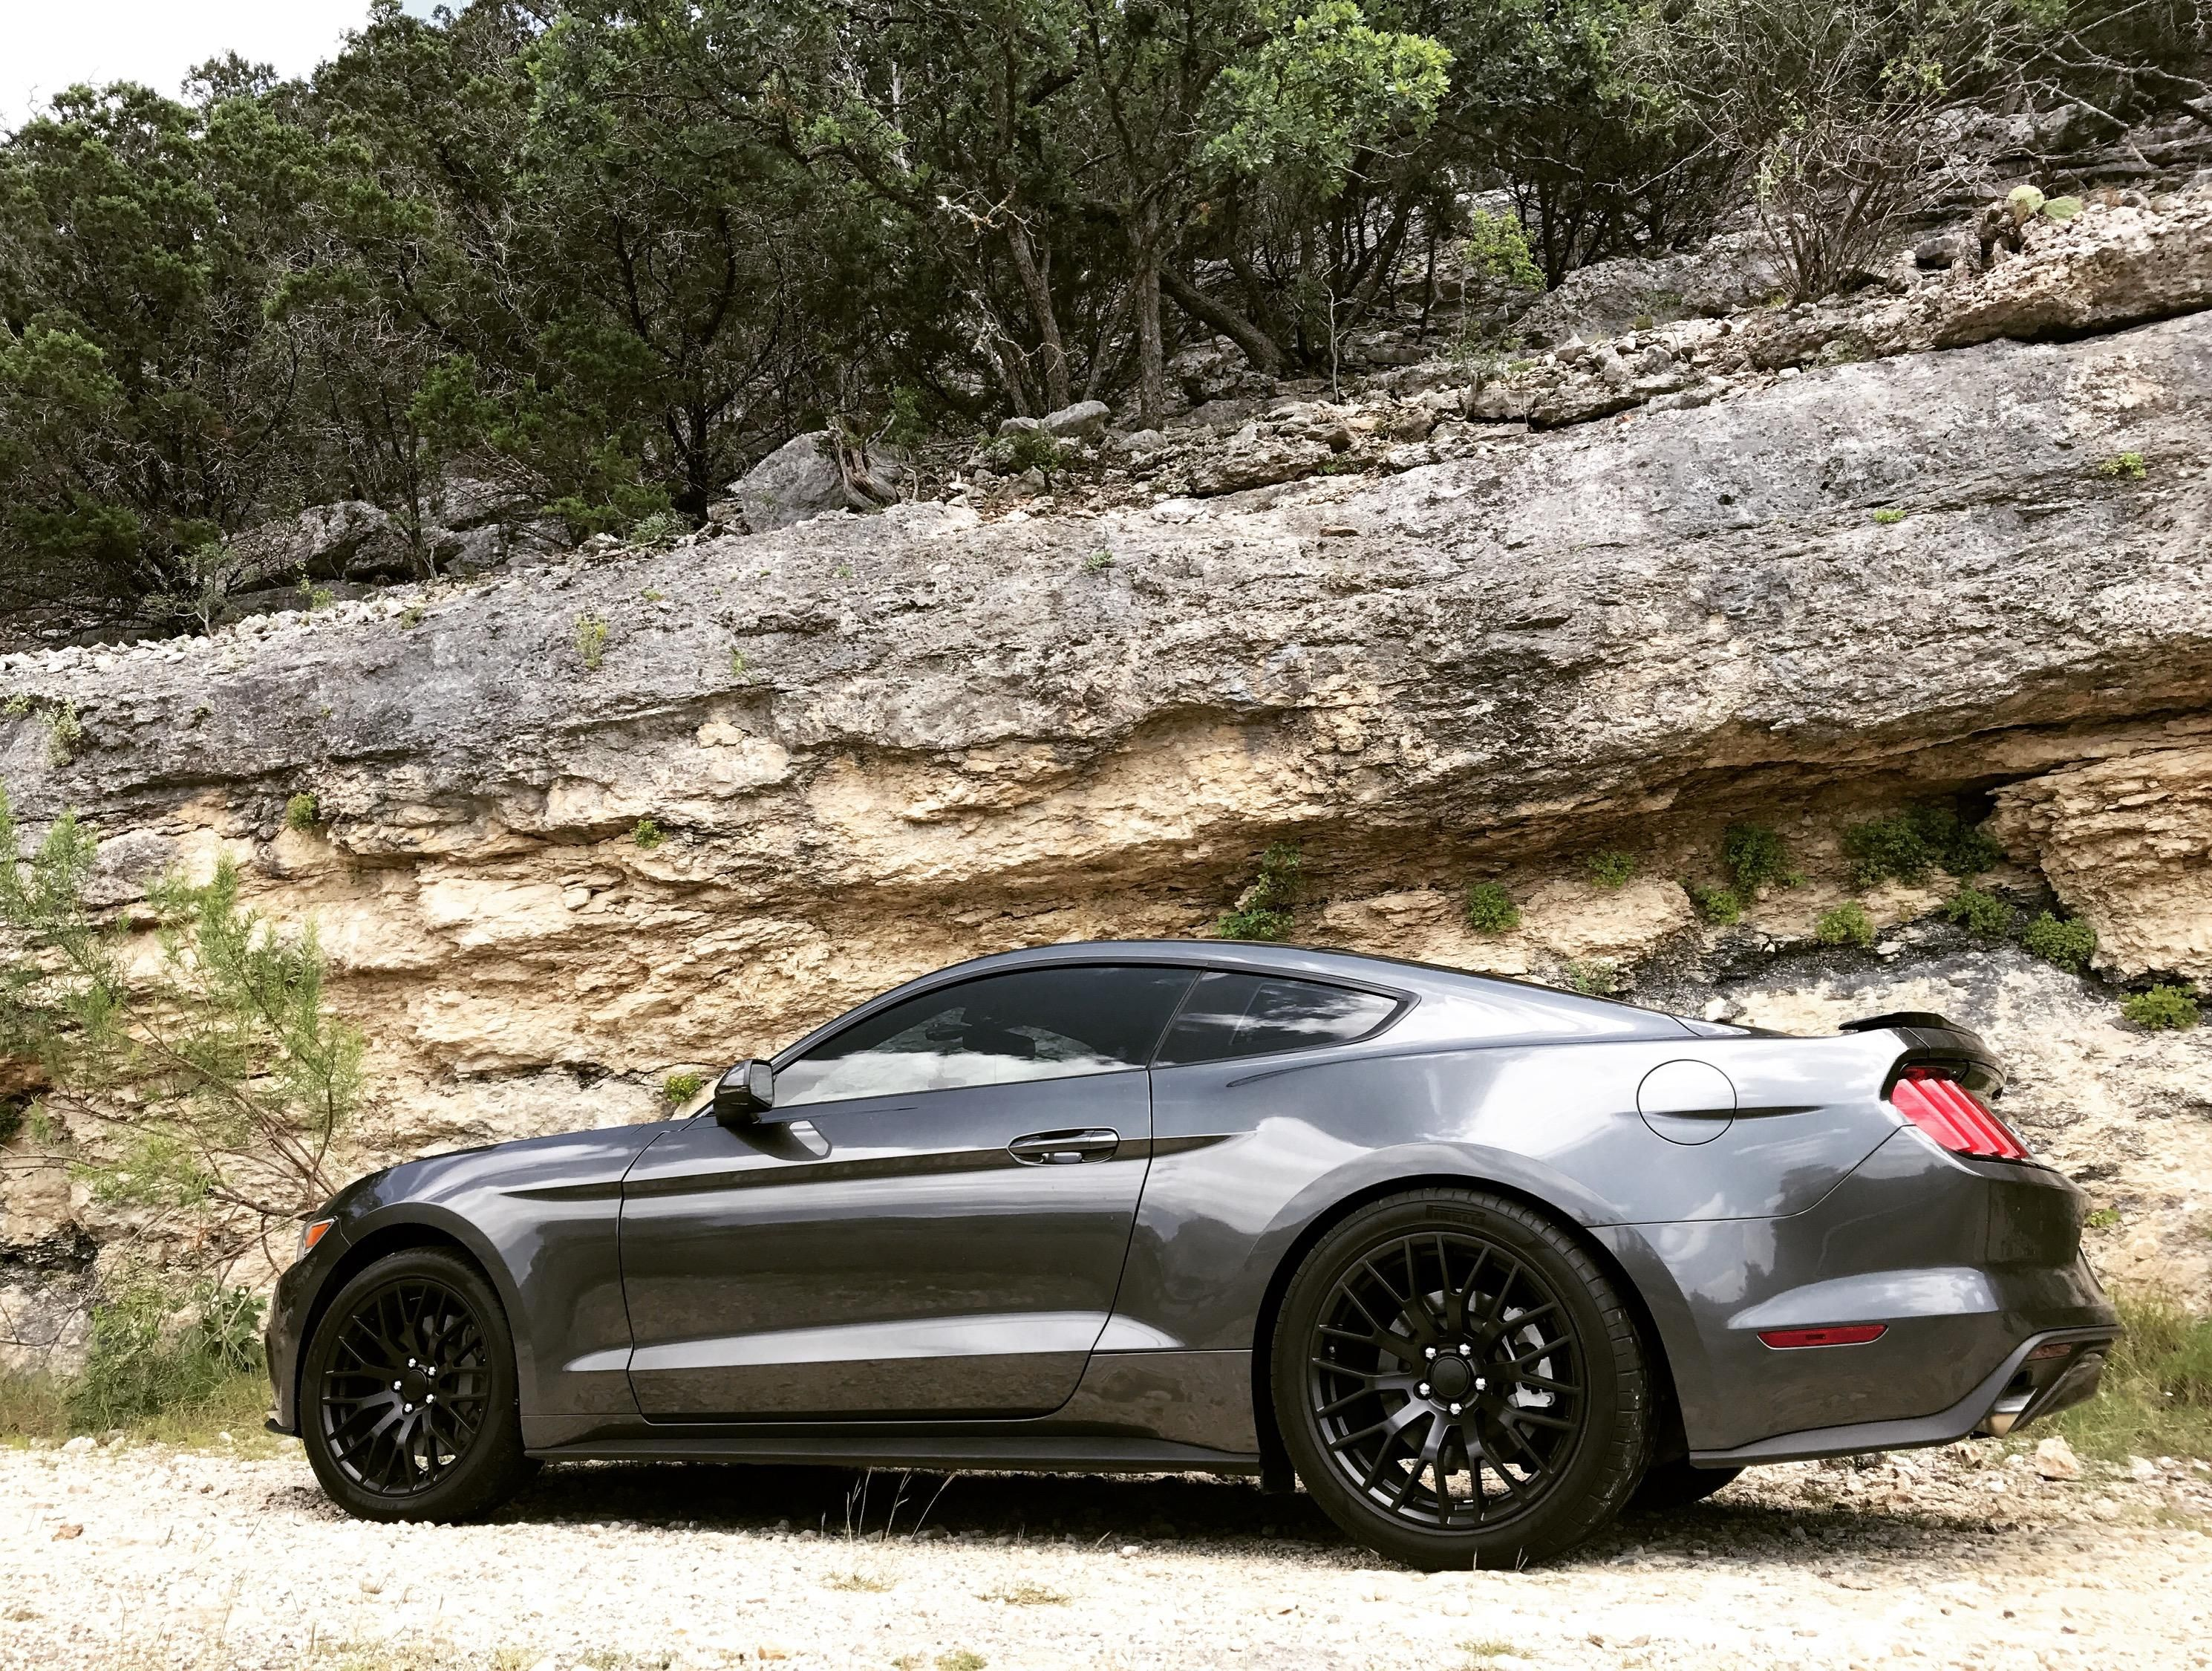 Fits 2017 Ecostang Gt Style 19x10 19x8 5 By Michael I Installed